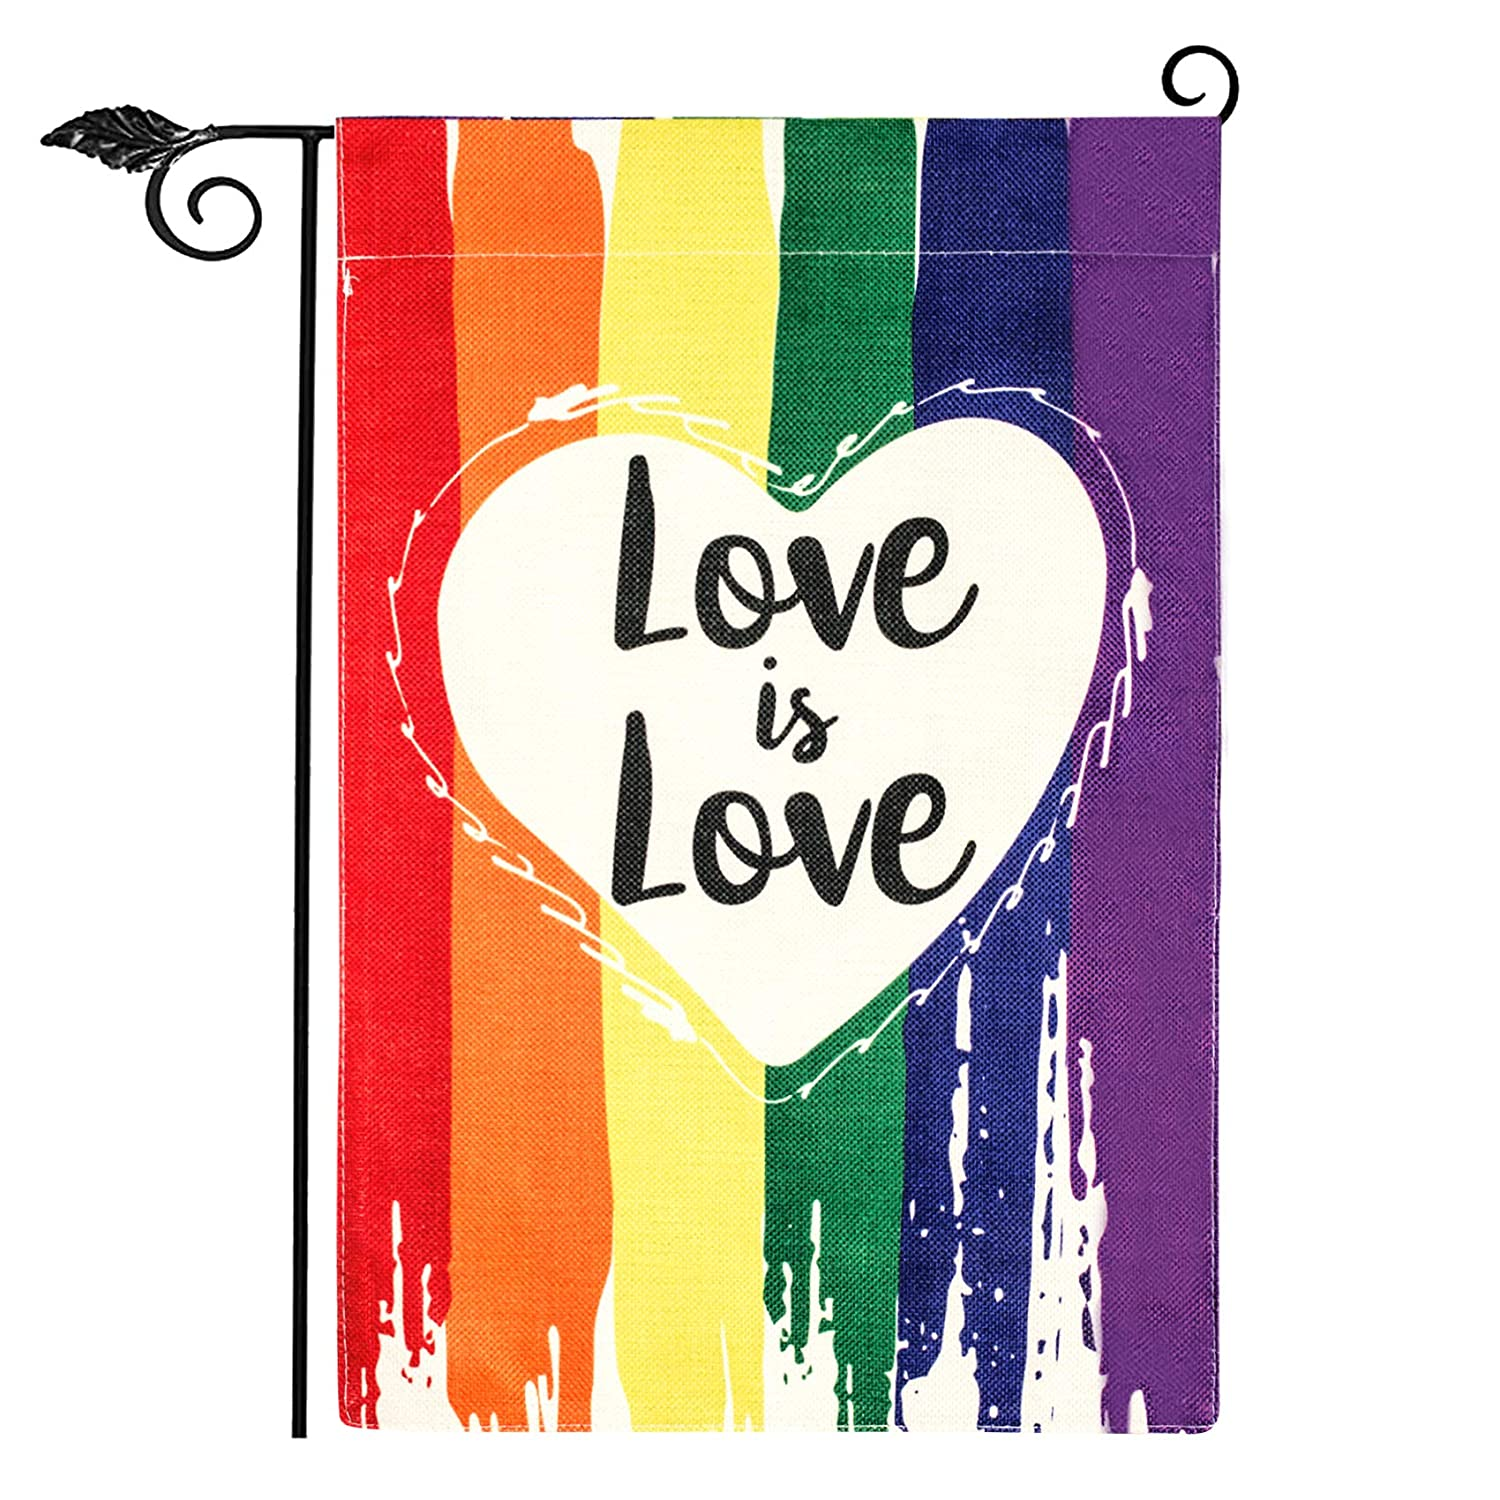 Unves Gay Pride Garden Flag, Rainbow Garden Flag Burlap Double Sided, Love Always Wins Flag, Respect LGBT Pride Flag Colorful for Yard House Lawn Farmhouse Holiday Outdoor Decor 12.5 x 18 Inch